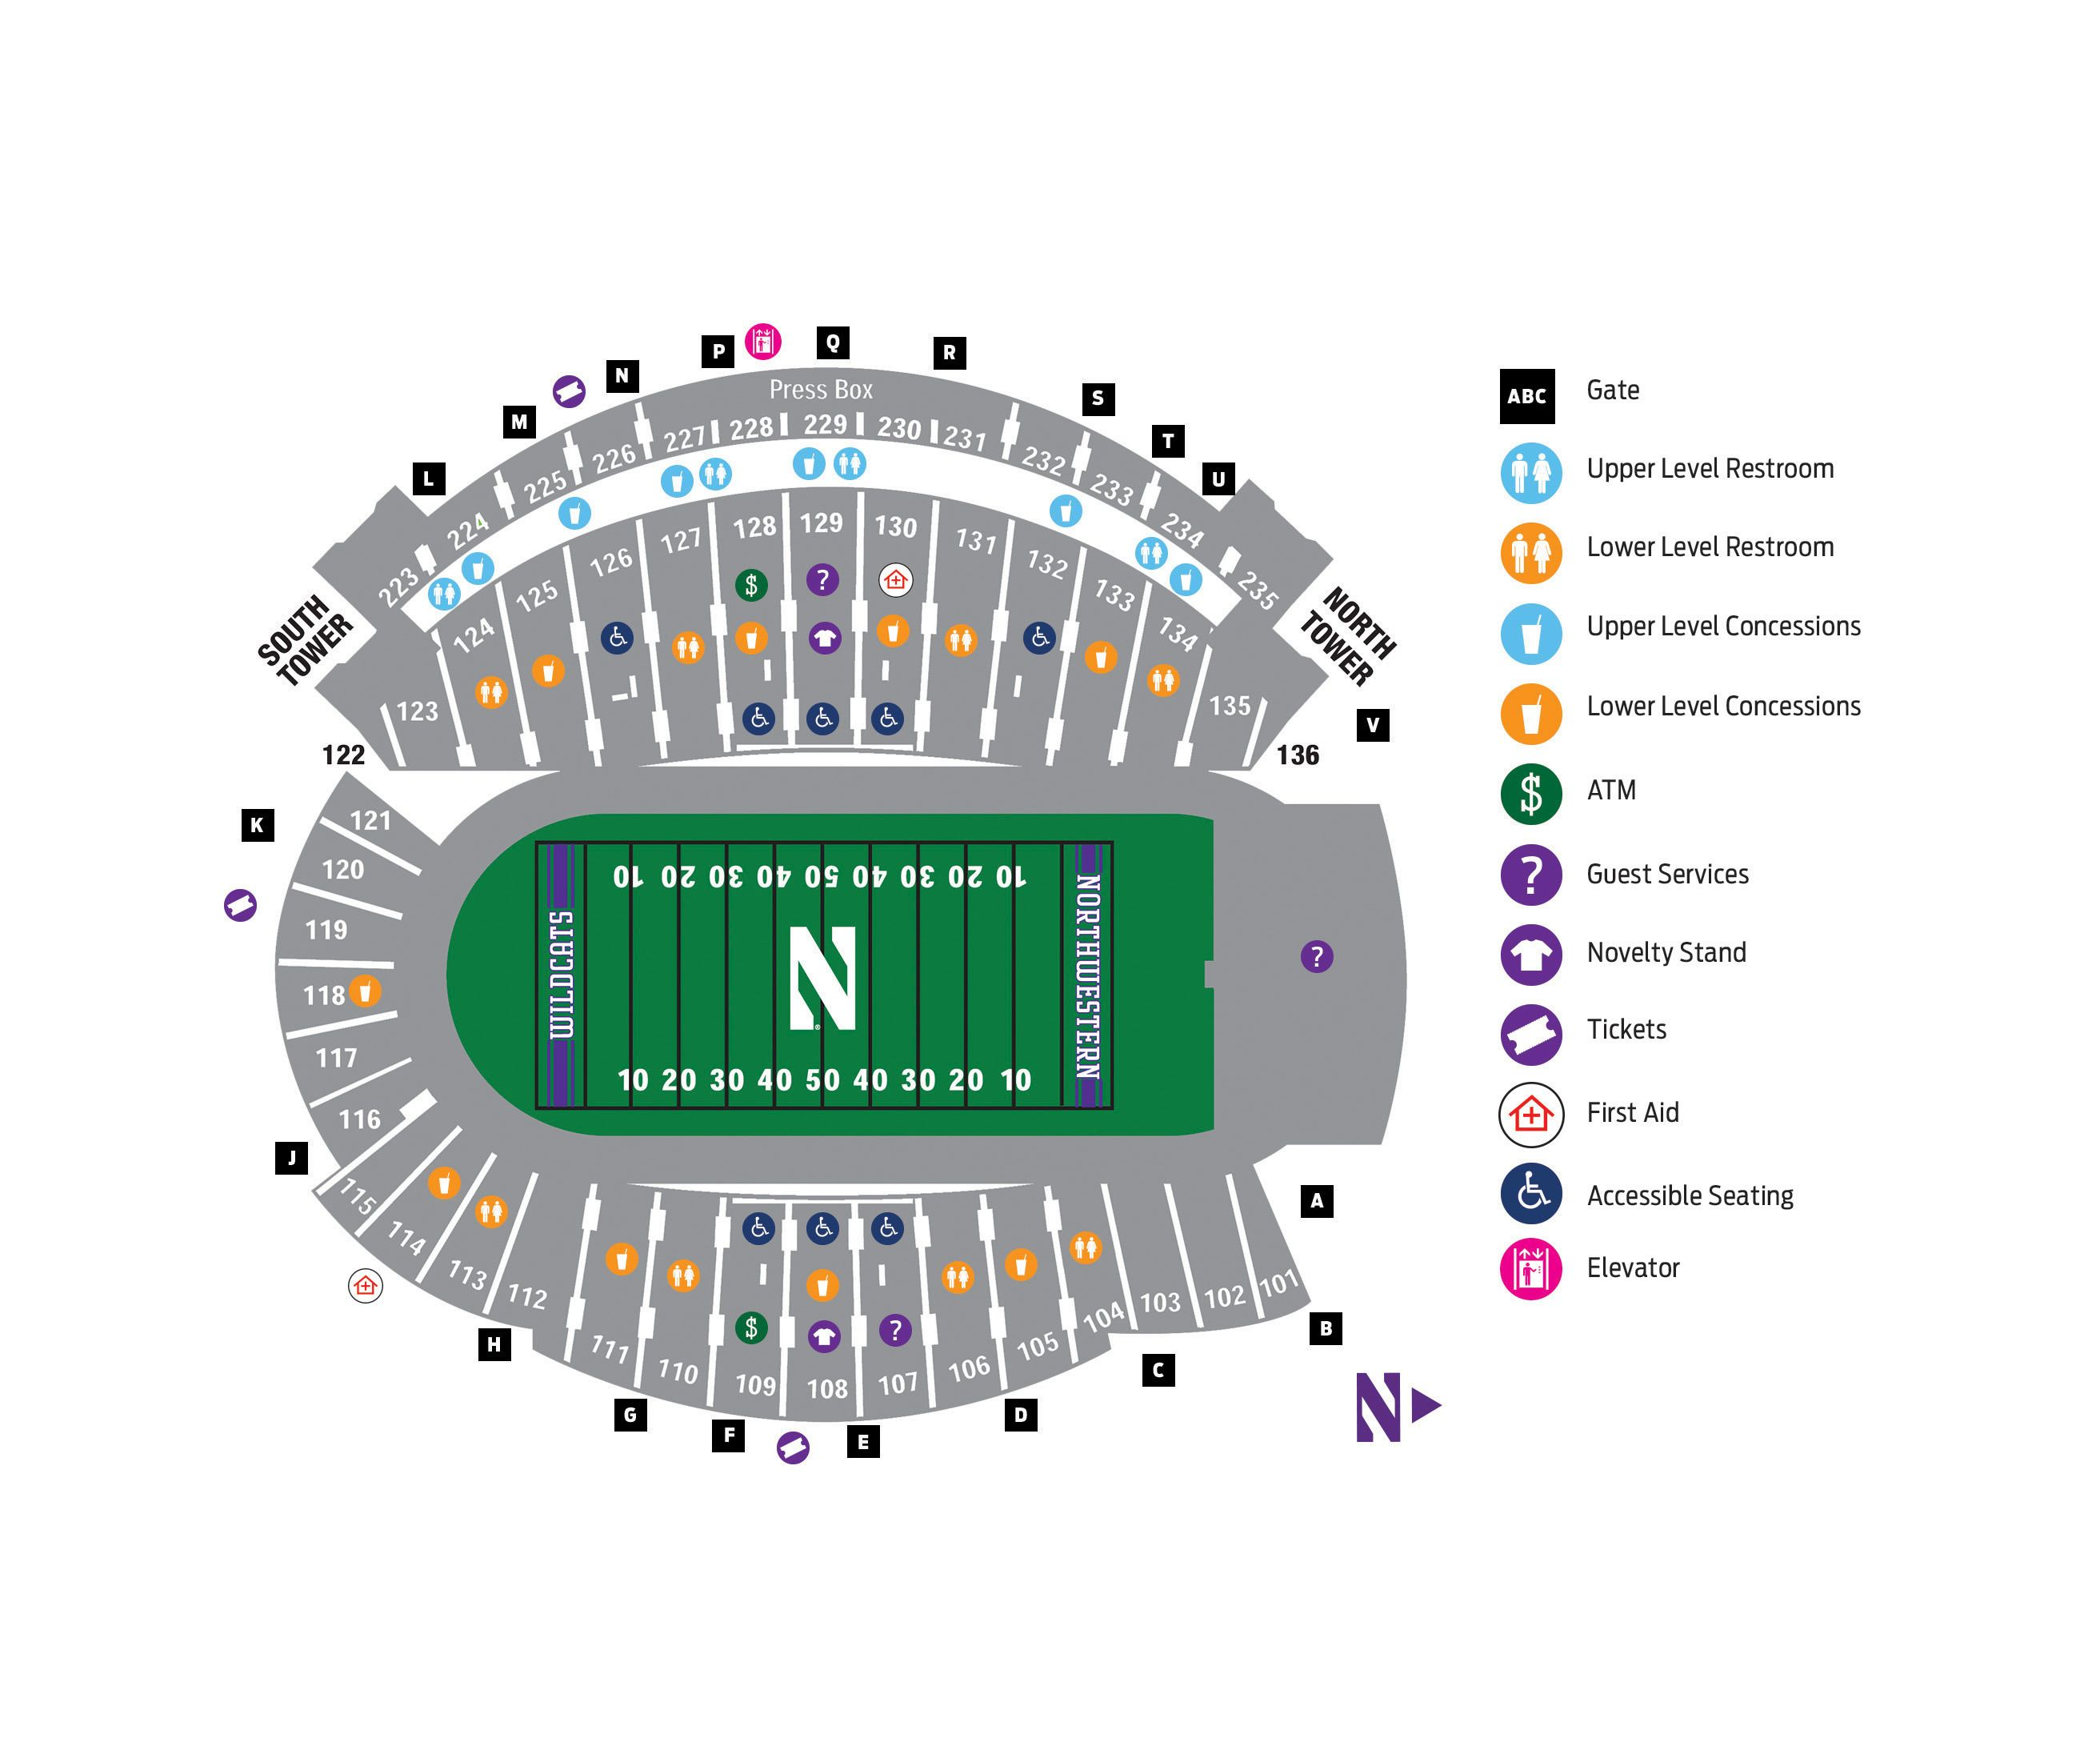 northwestern university ryan field Google Search Ecu